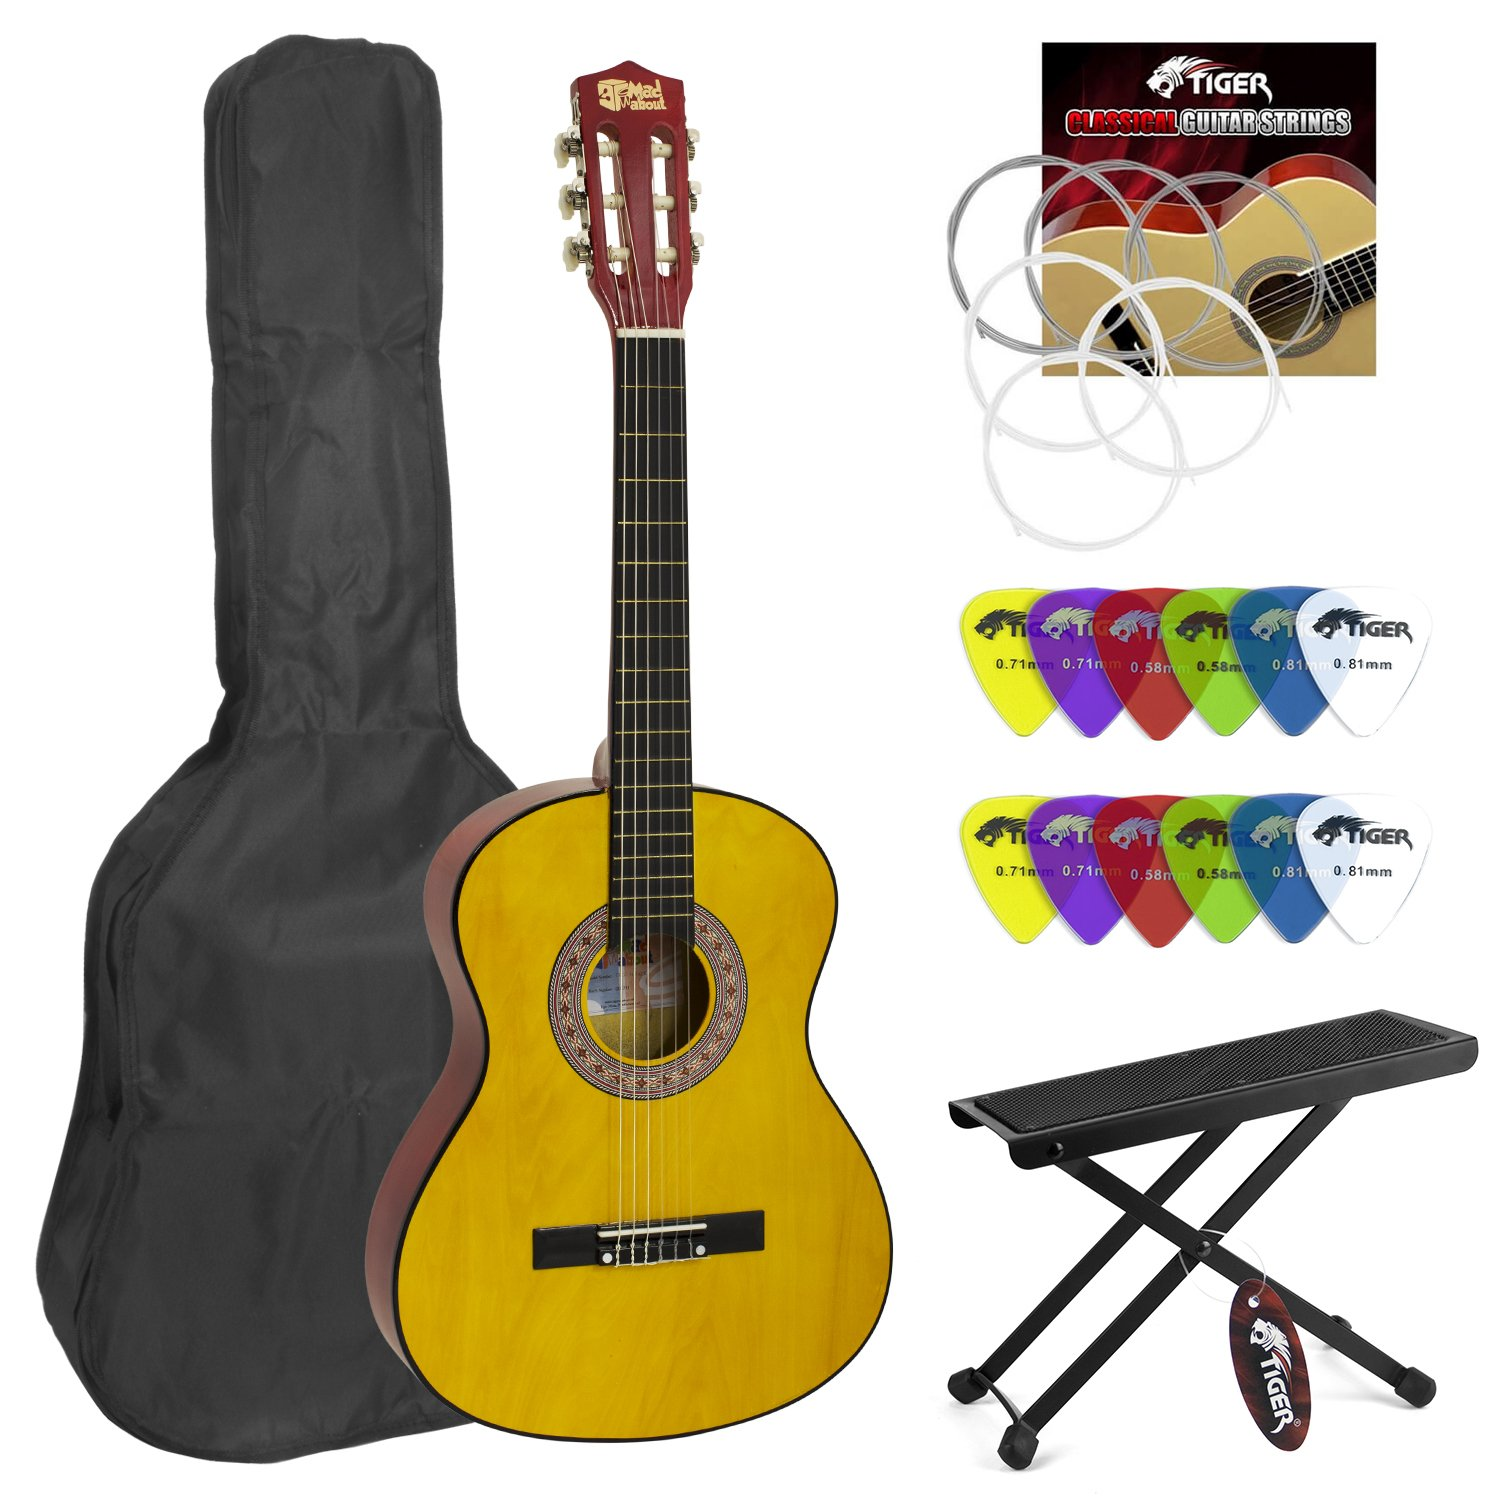 Mad About 1/2 Childrens Classical Guitar CLG1-12-NB